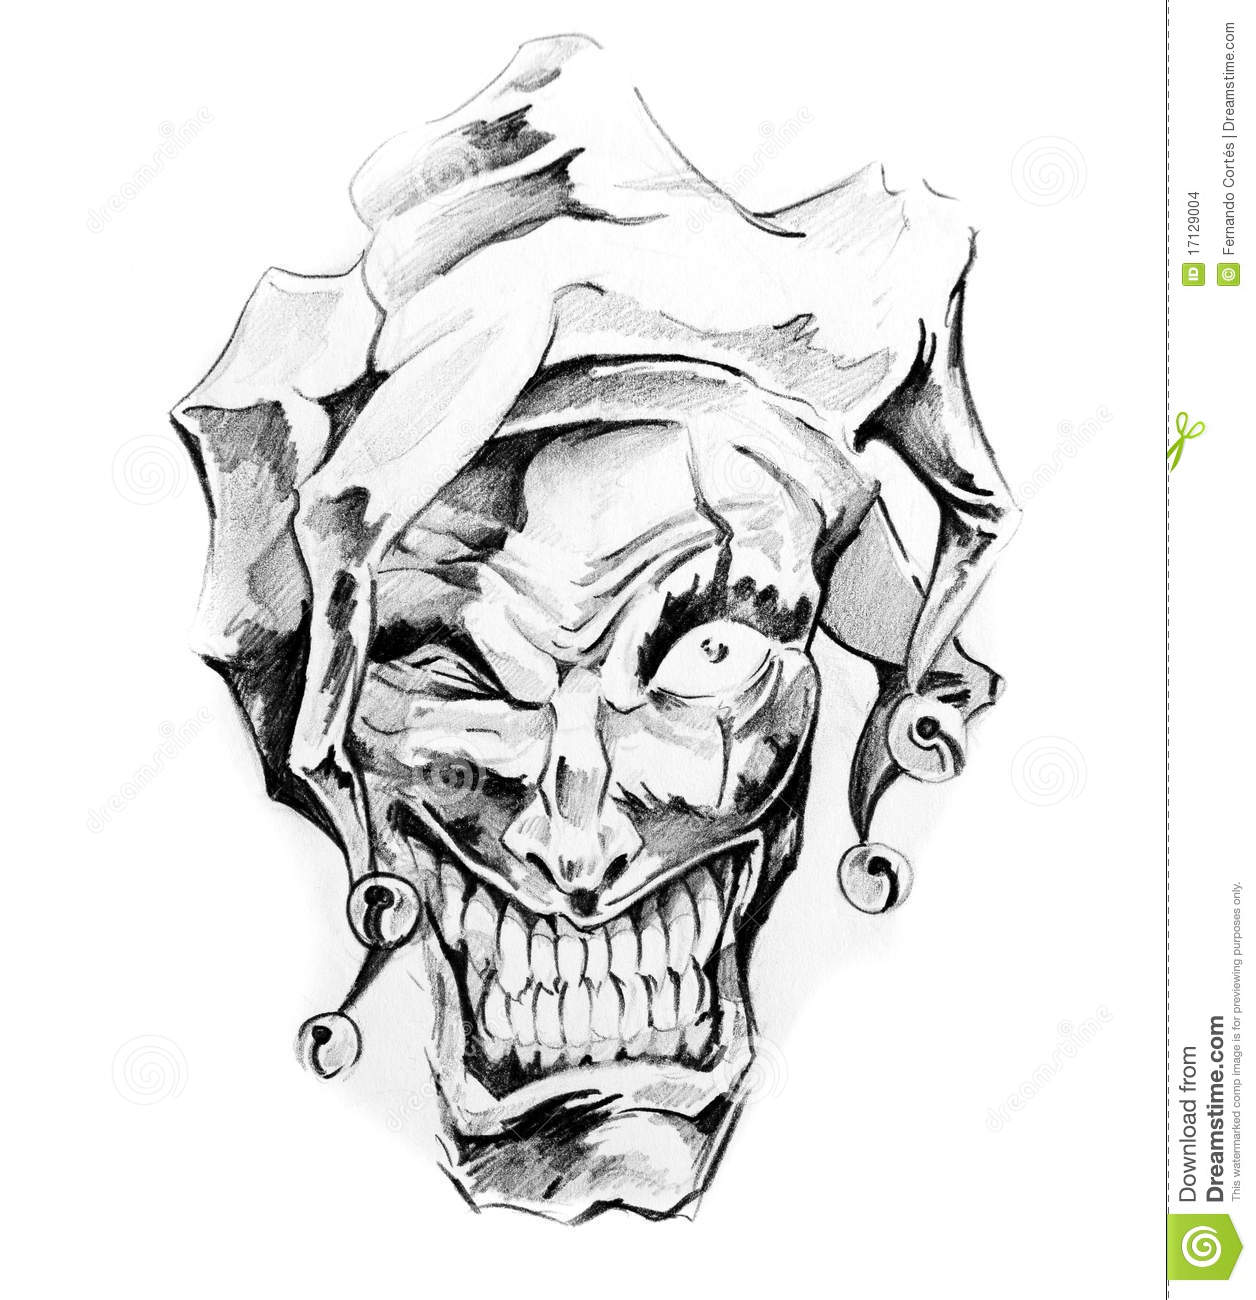 Gangster Drawings Of Smile Now Cry Later Sketch Of Tattoo Art, ...